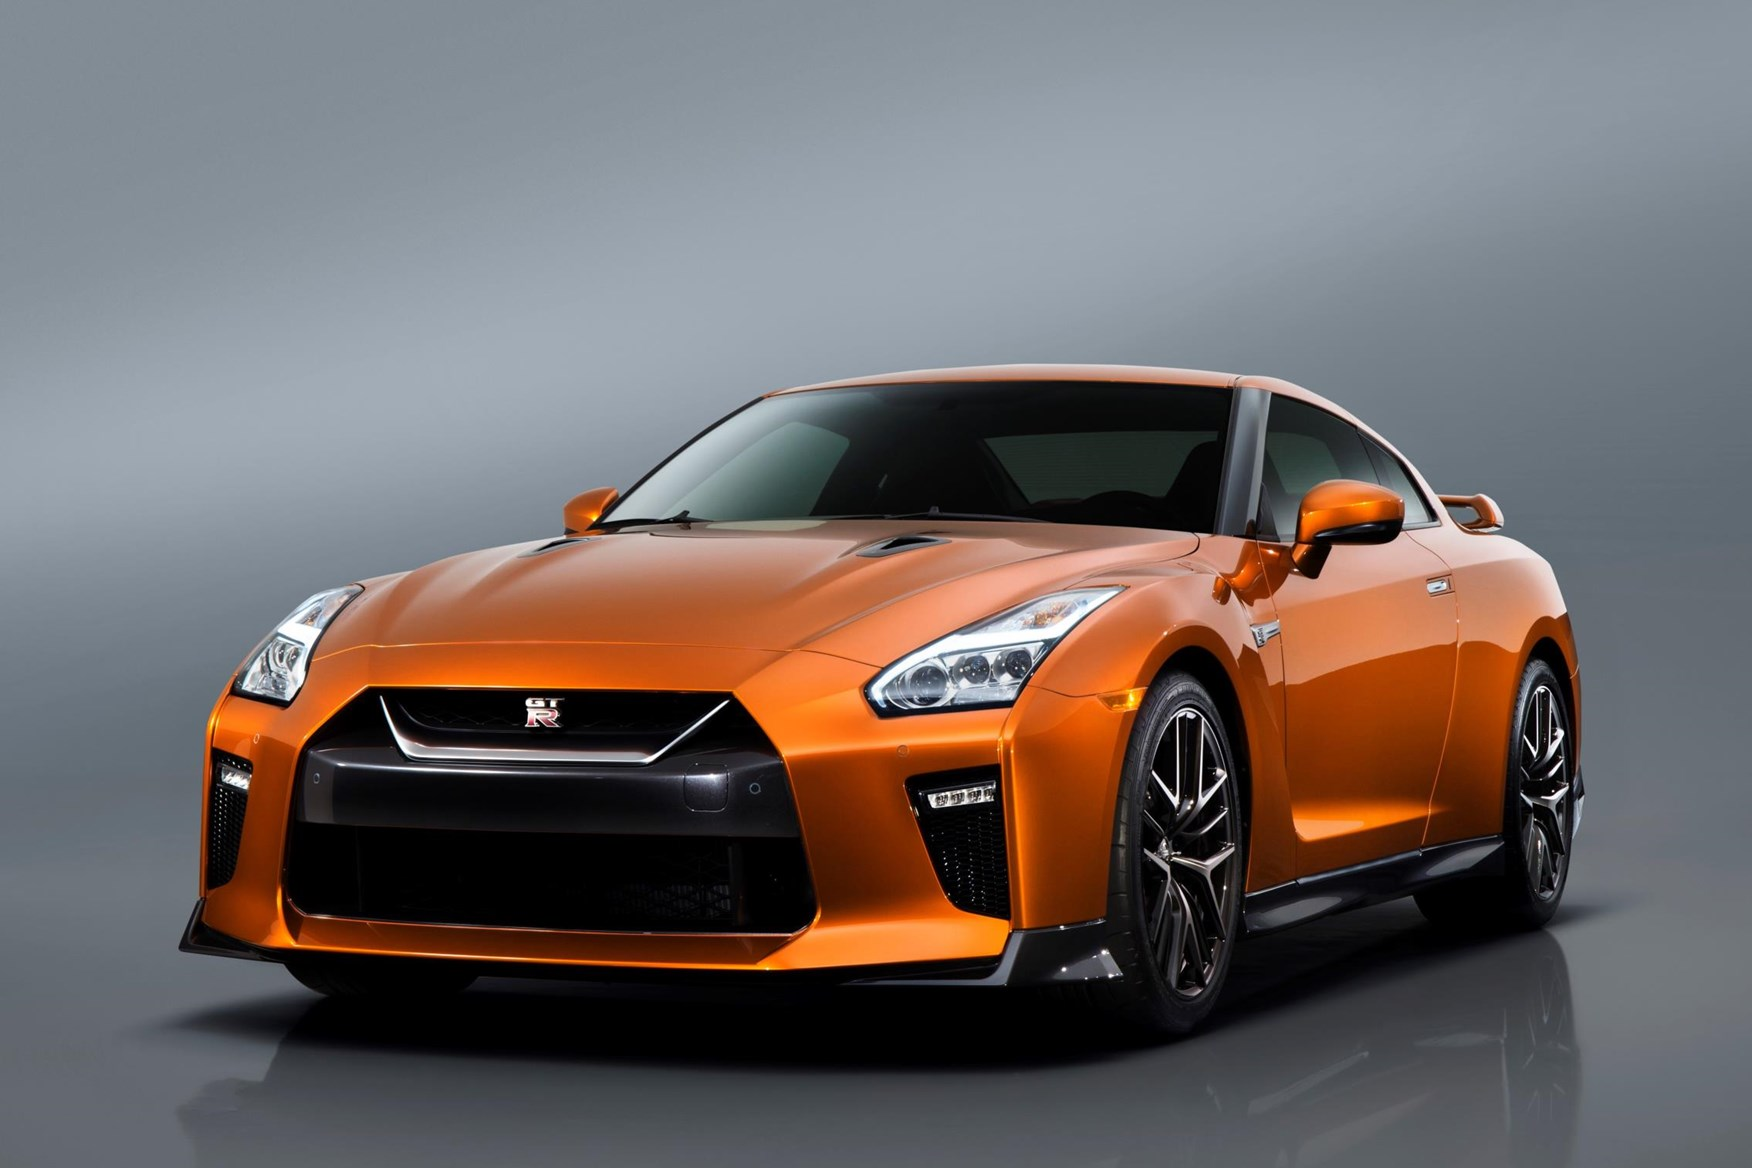 ... Chrome Effect Grille Distinguishes Front Of Nissan GT R ...